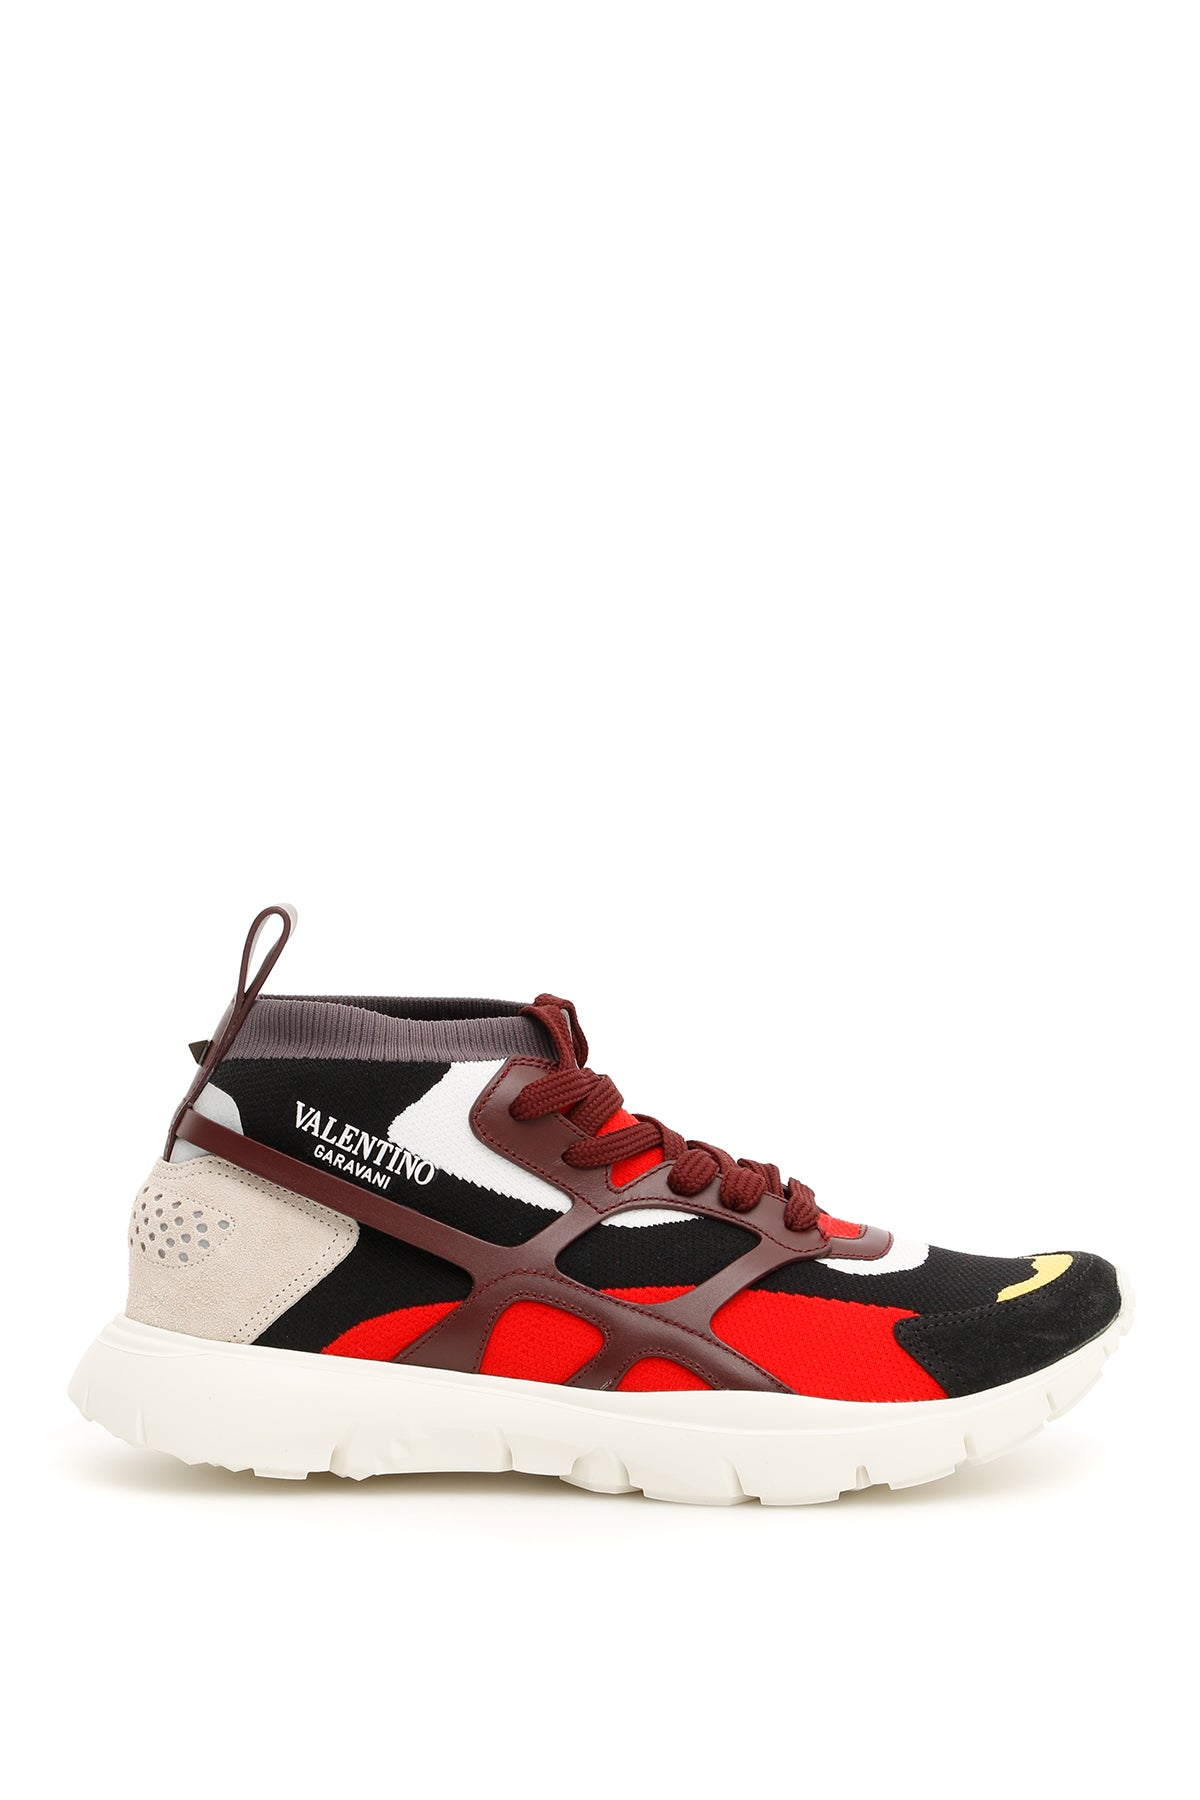 VALENTINO GARAVANI SOUND HIGH SNEAKERS